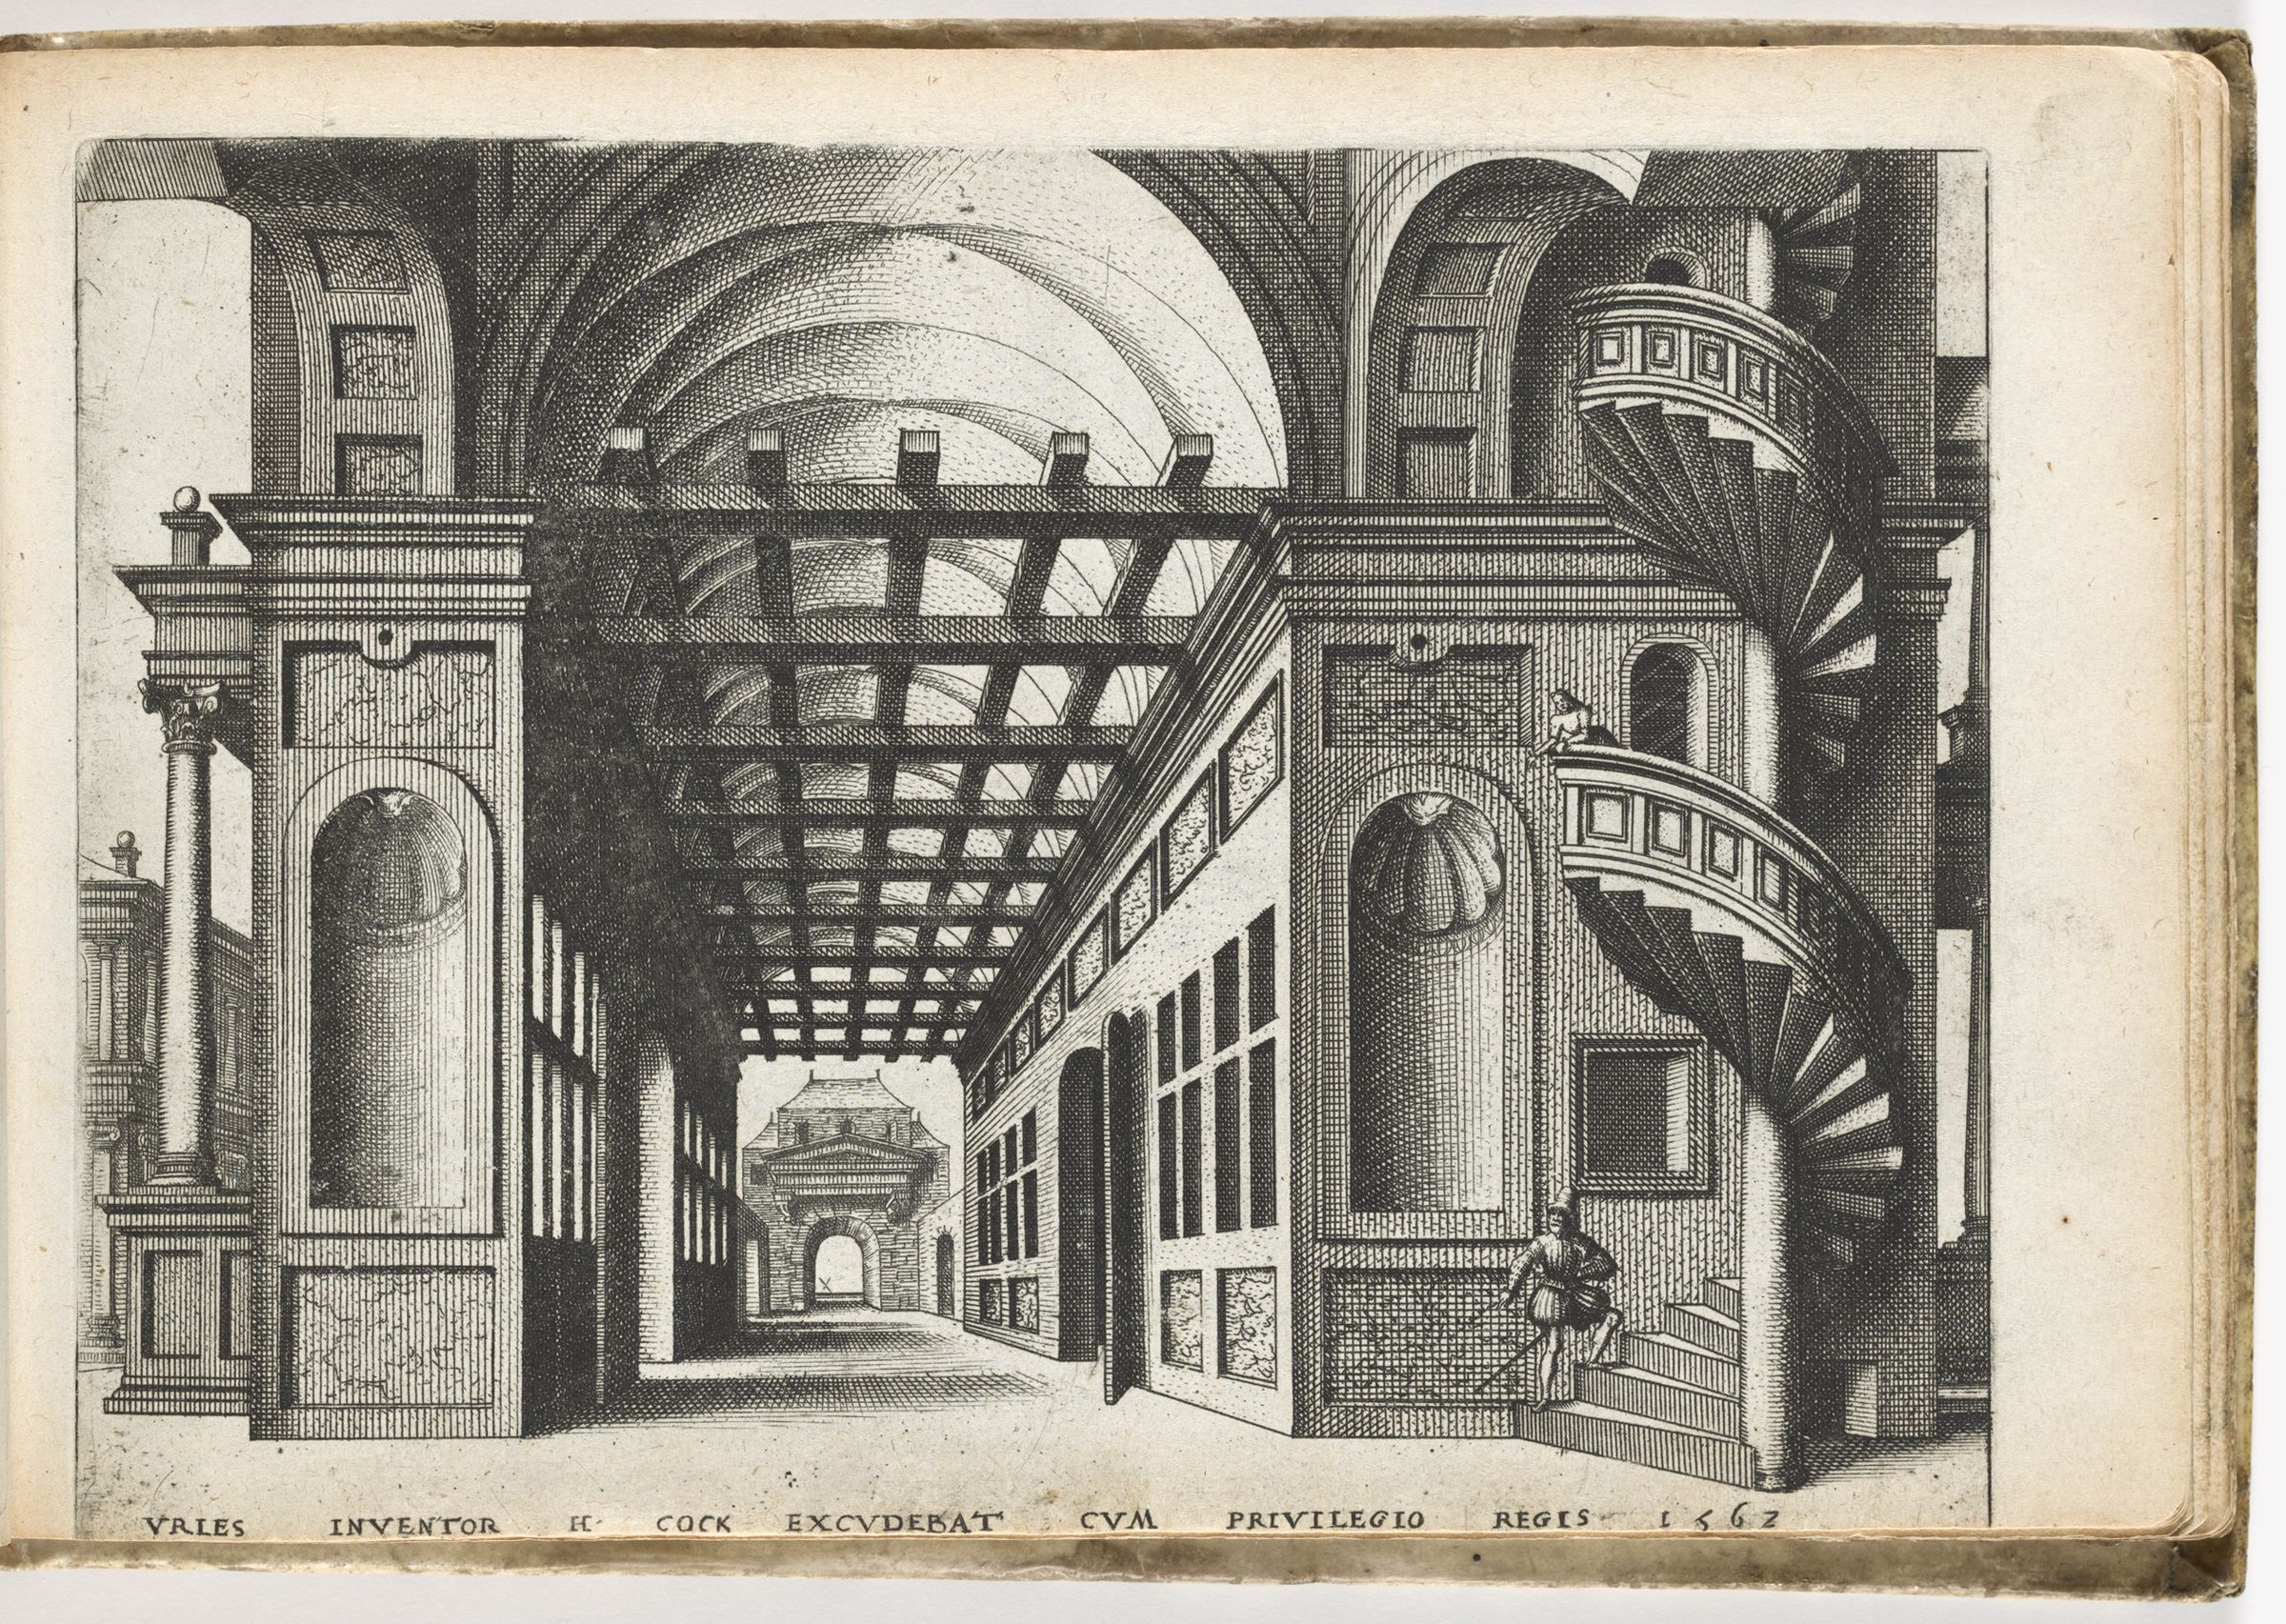 Vaulted Entrance Hall To A House With Winding Stairs On Far Right